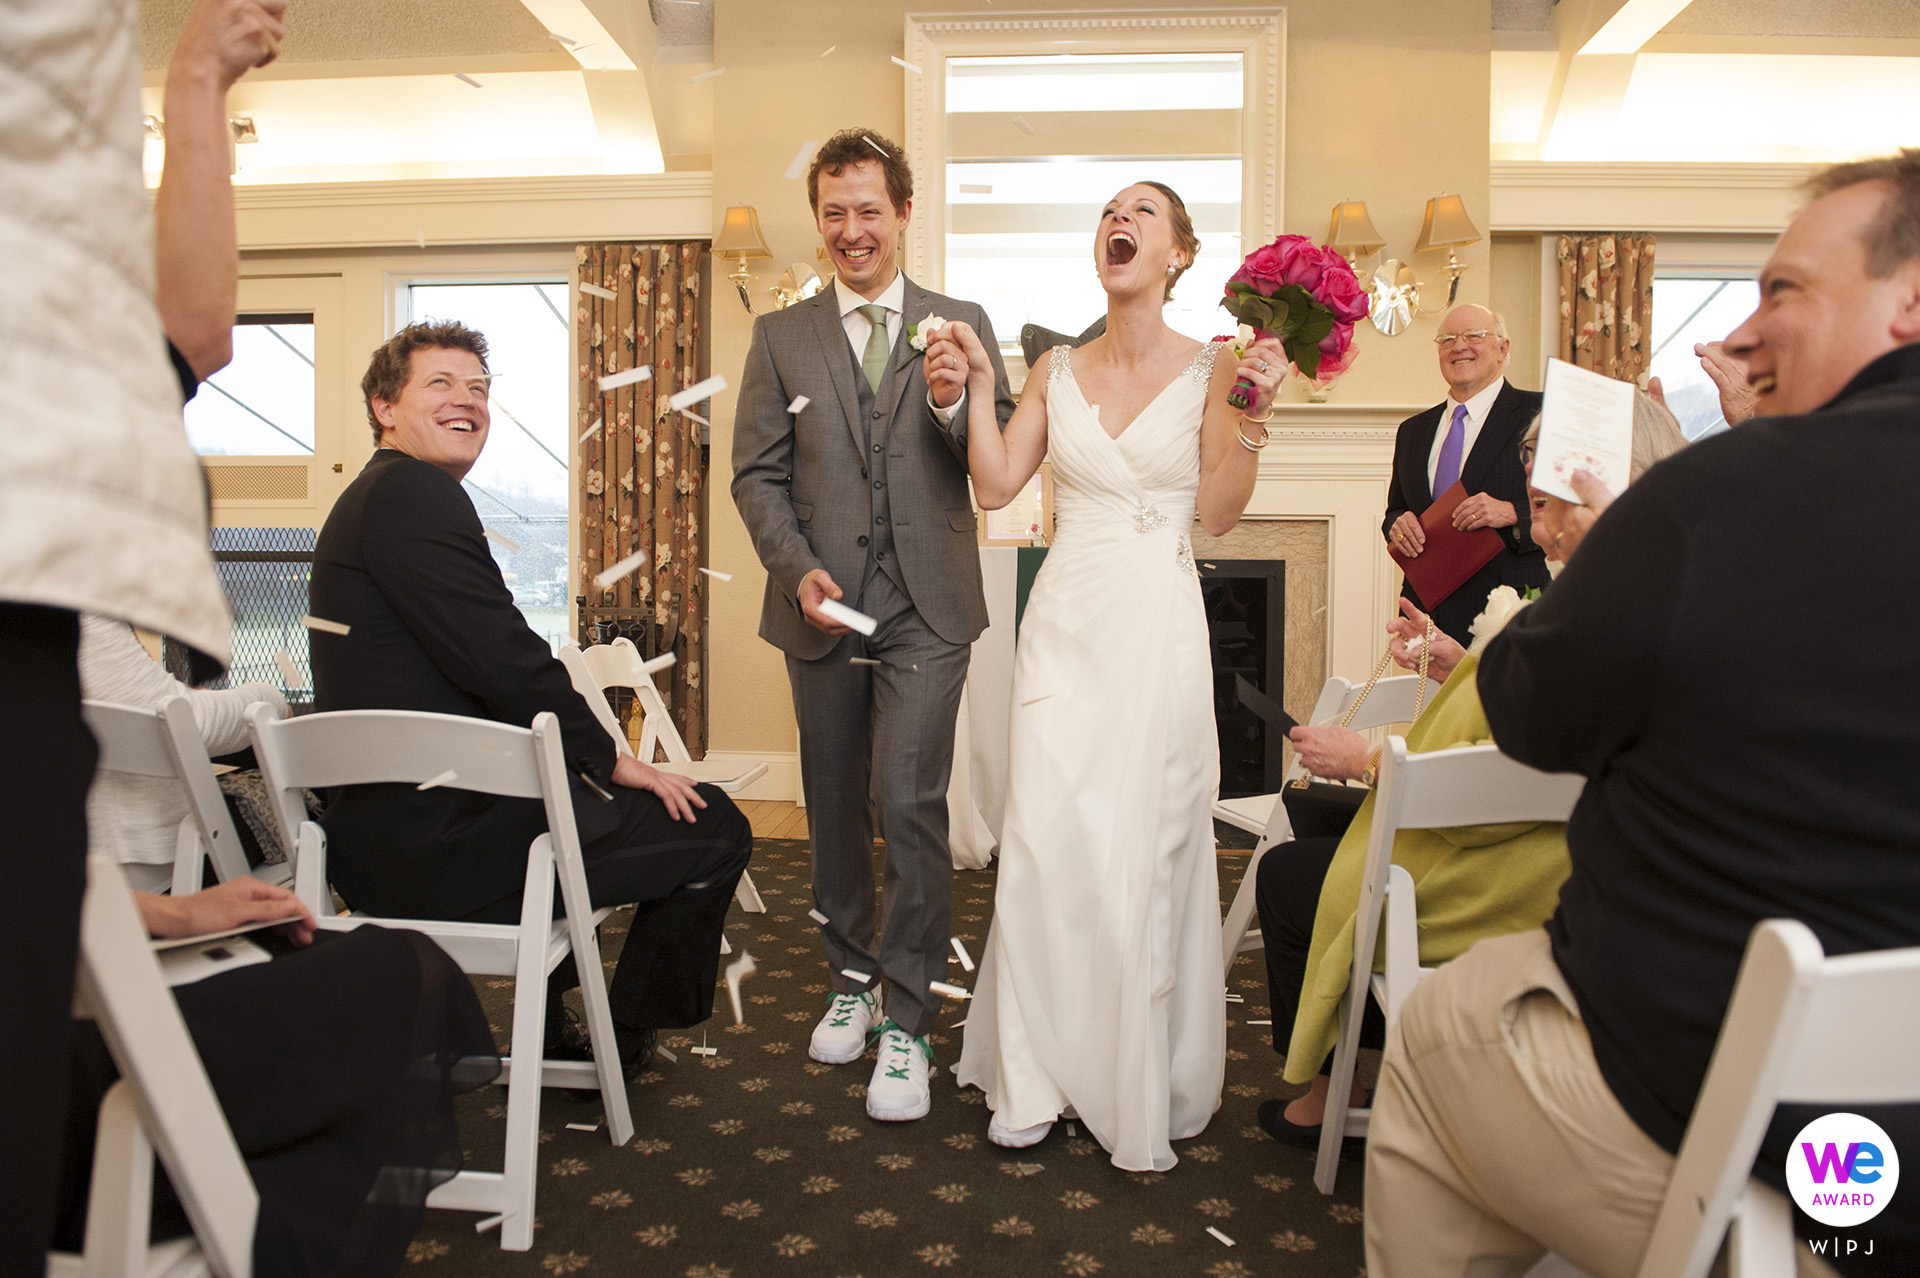 Longwood Cricket Club, Chestnut Hill, Massachusetts Elopement Image Story | The bride and groom celebrated their wedding on a rainy Tuesday afternoon in an intimate ceremony